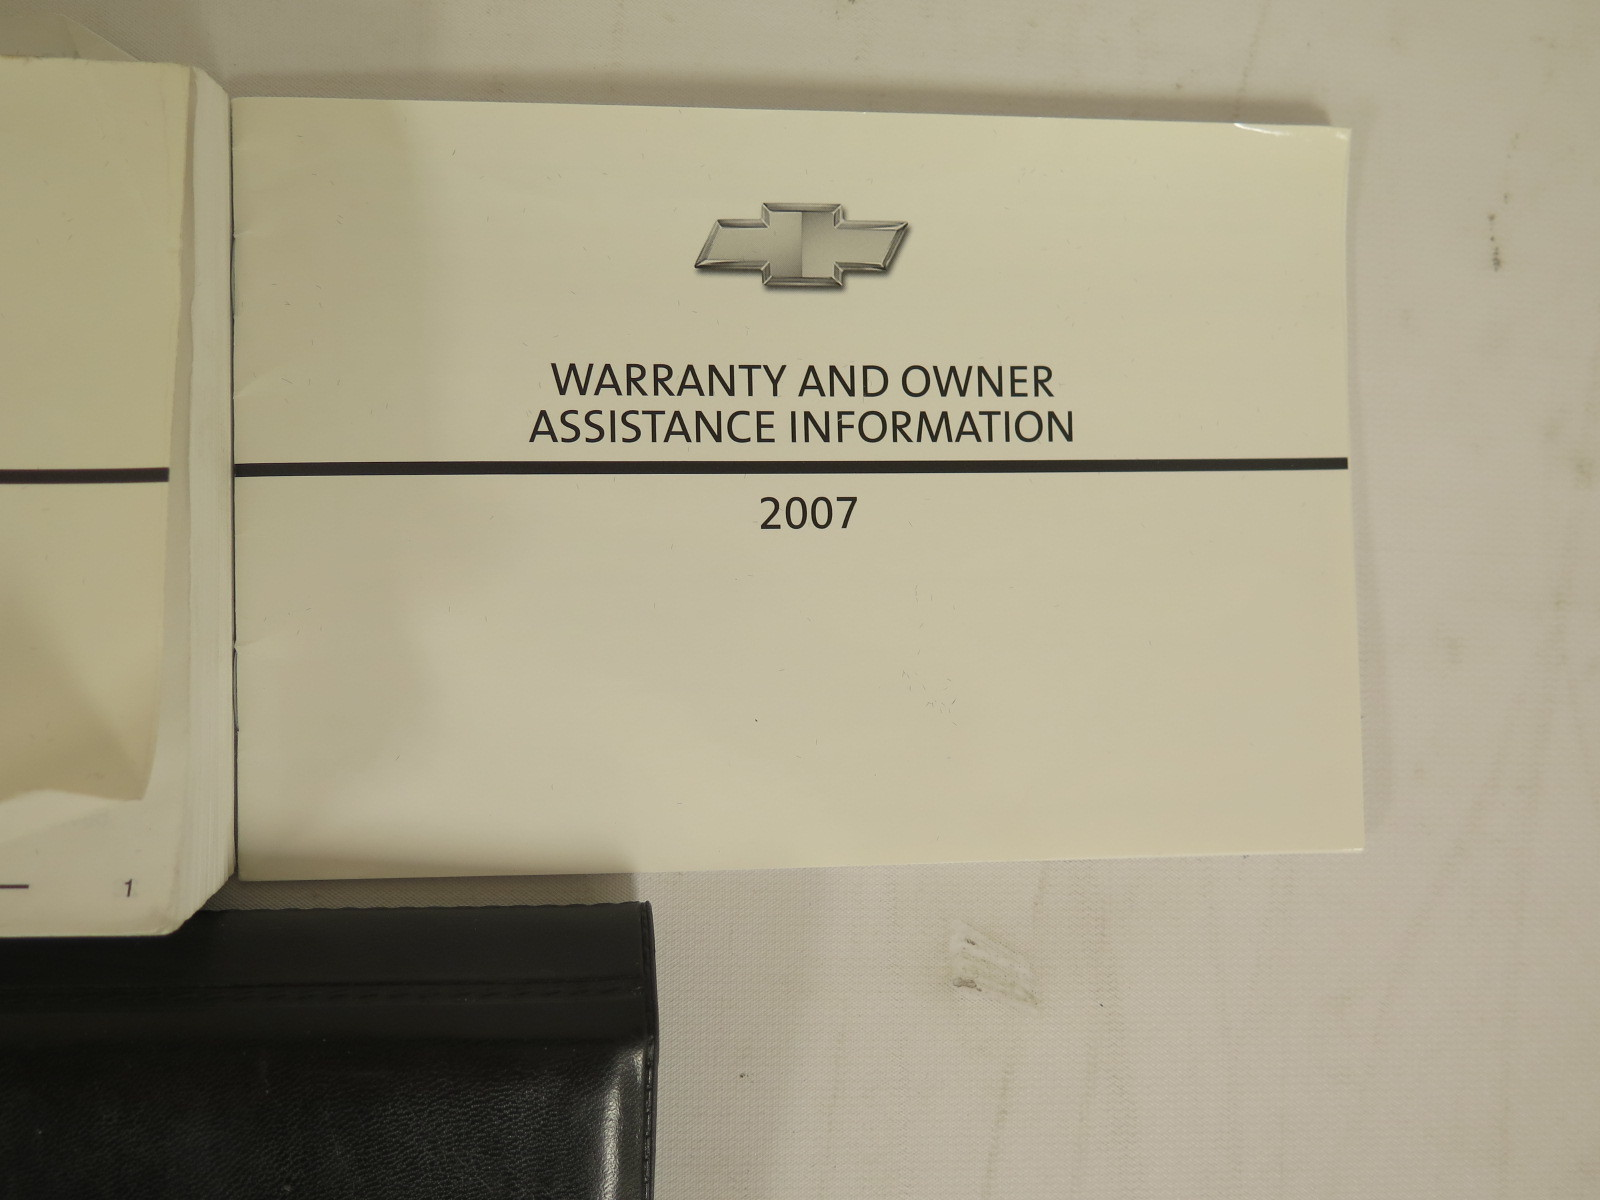 2007 chevy chevrolet tahoe suburban owners manual book bashful yak rh bashfulyak com 2010 suburban owners manual 2007 suburban owners manual pdf